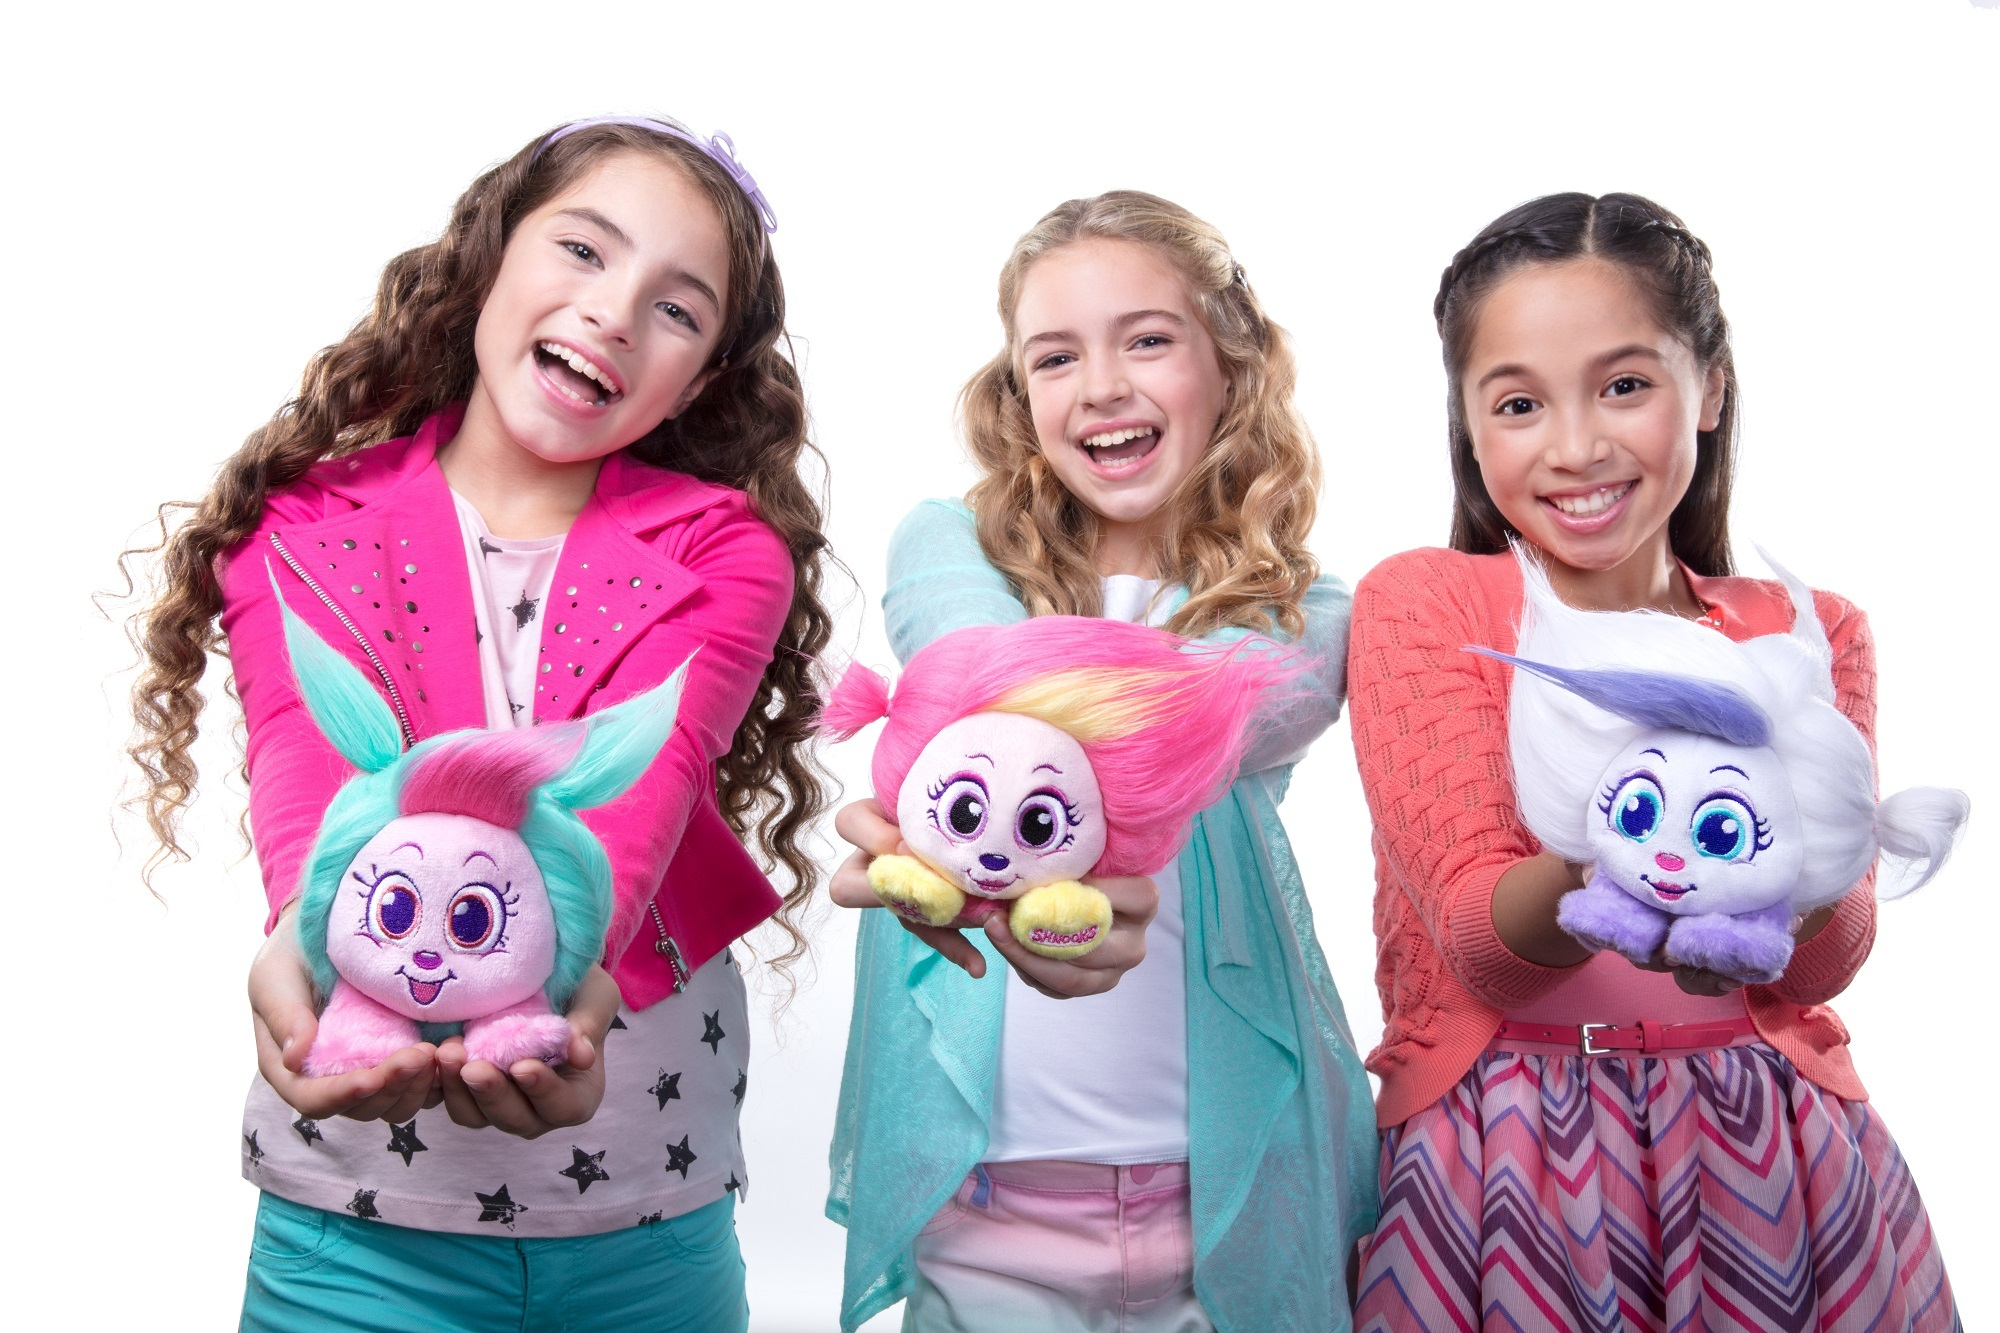 Walmart Toys For Girls : Zuru brings back shnooks the cuddly plush that magically grows from